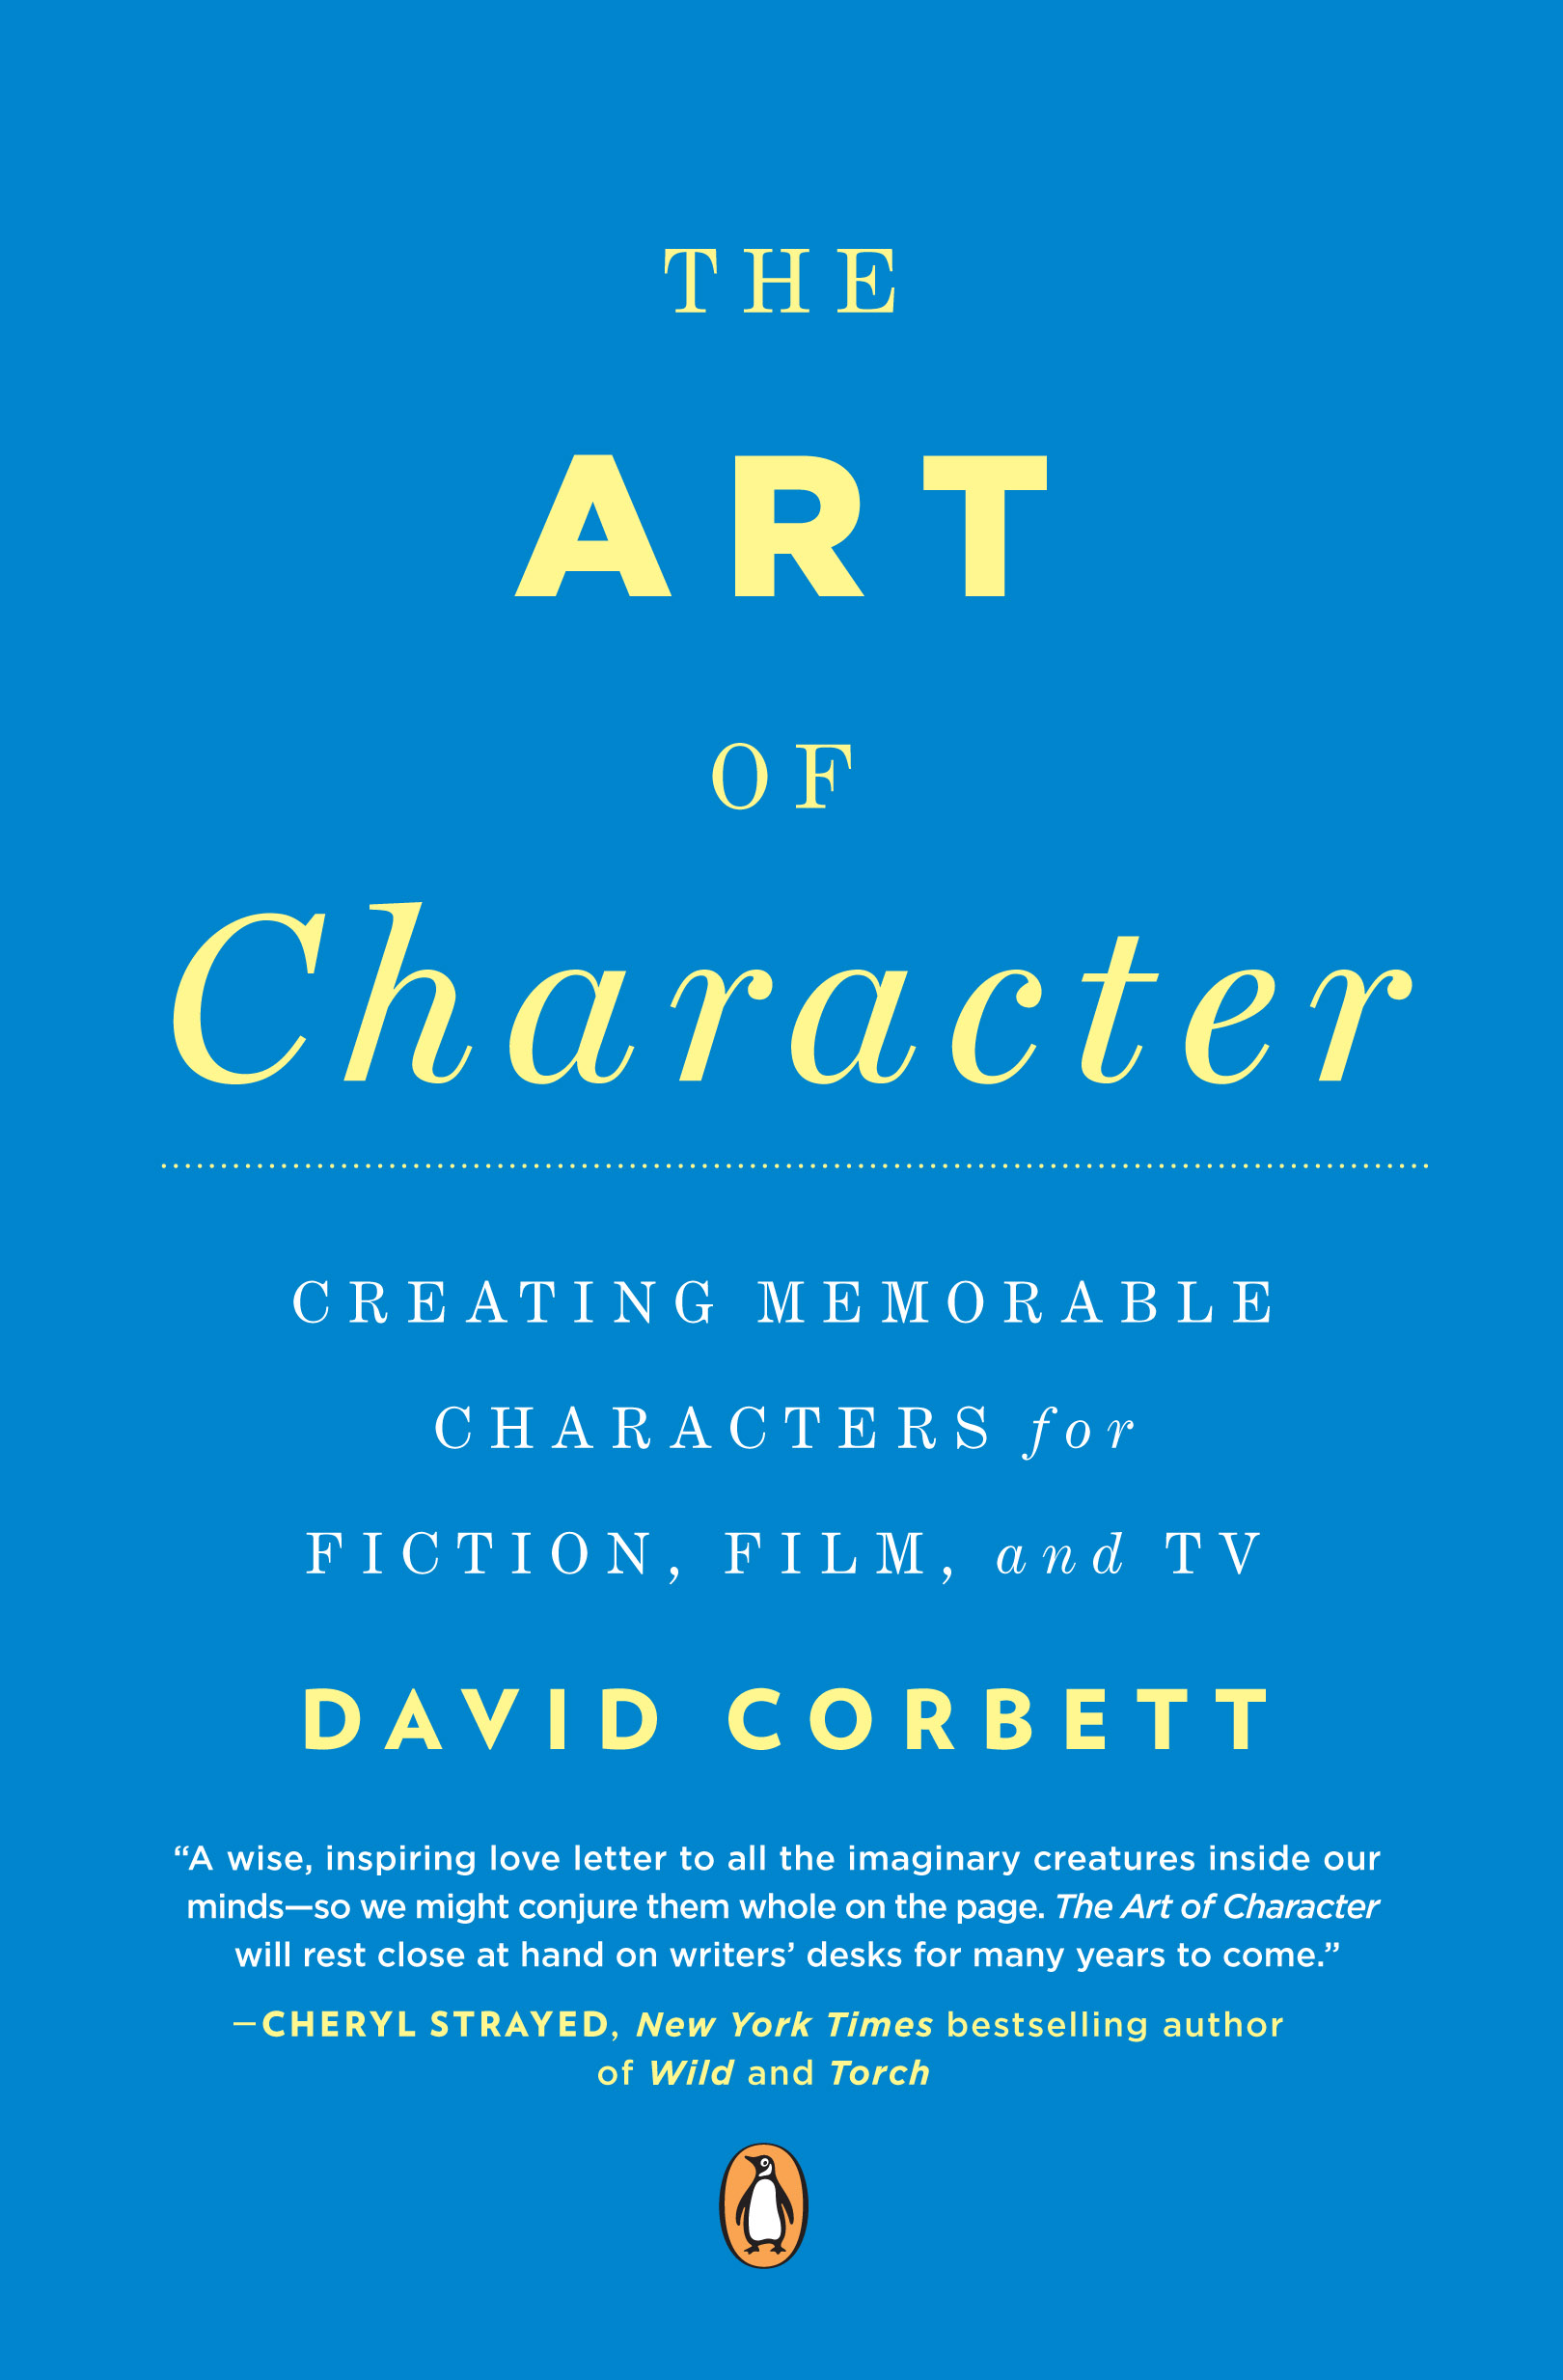 Author Interview: David Corbett on The Art of Character   Laura Stanfill